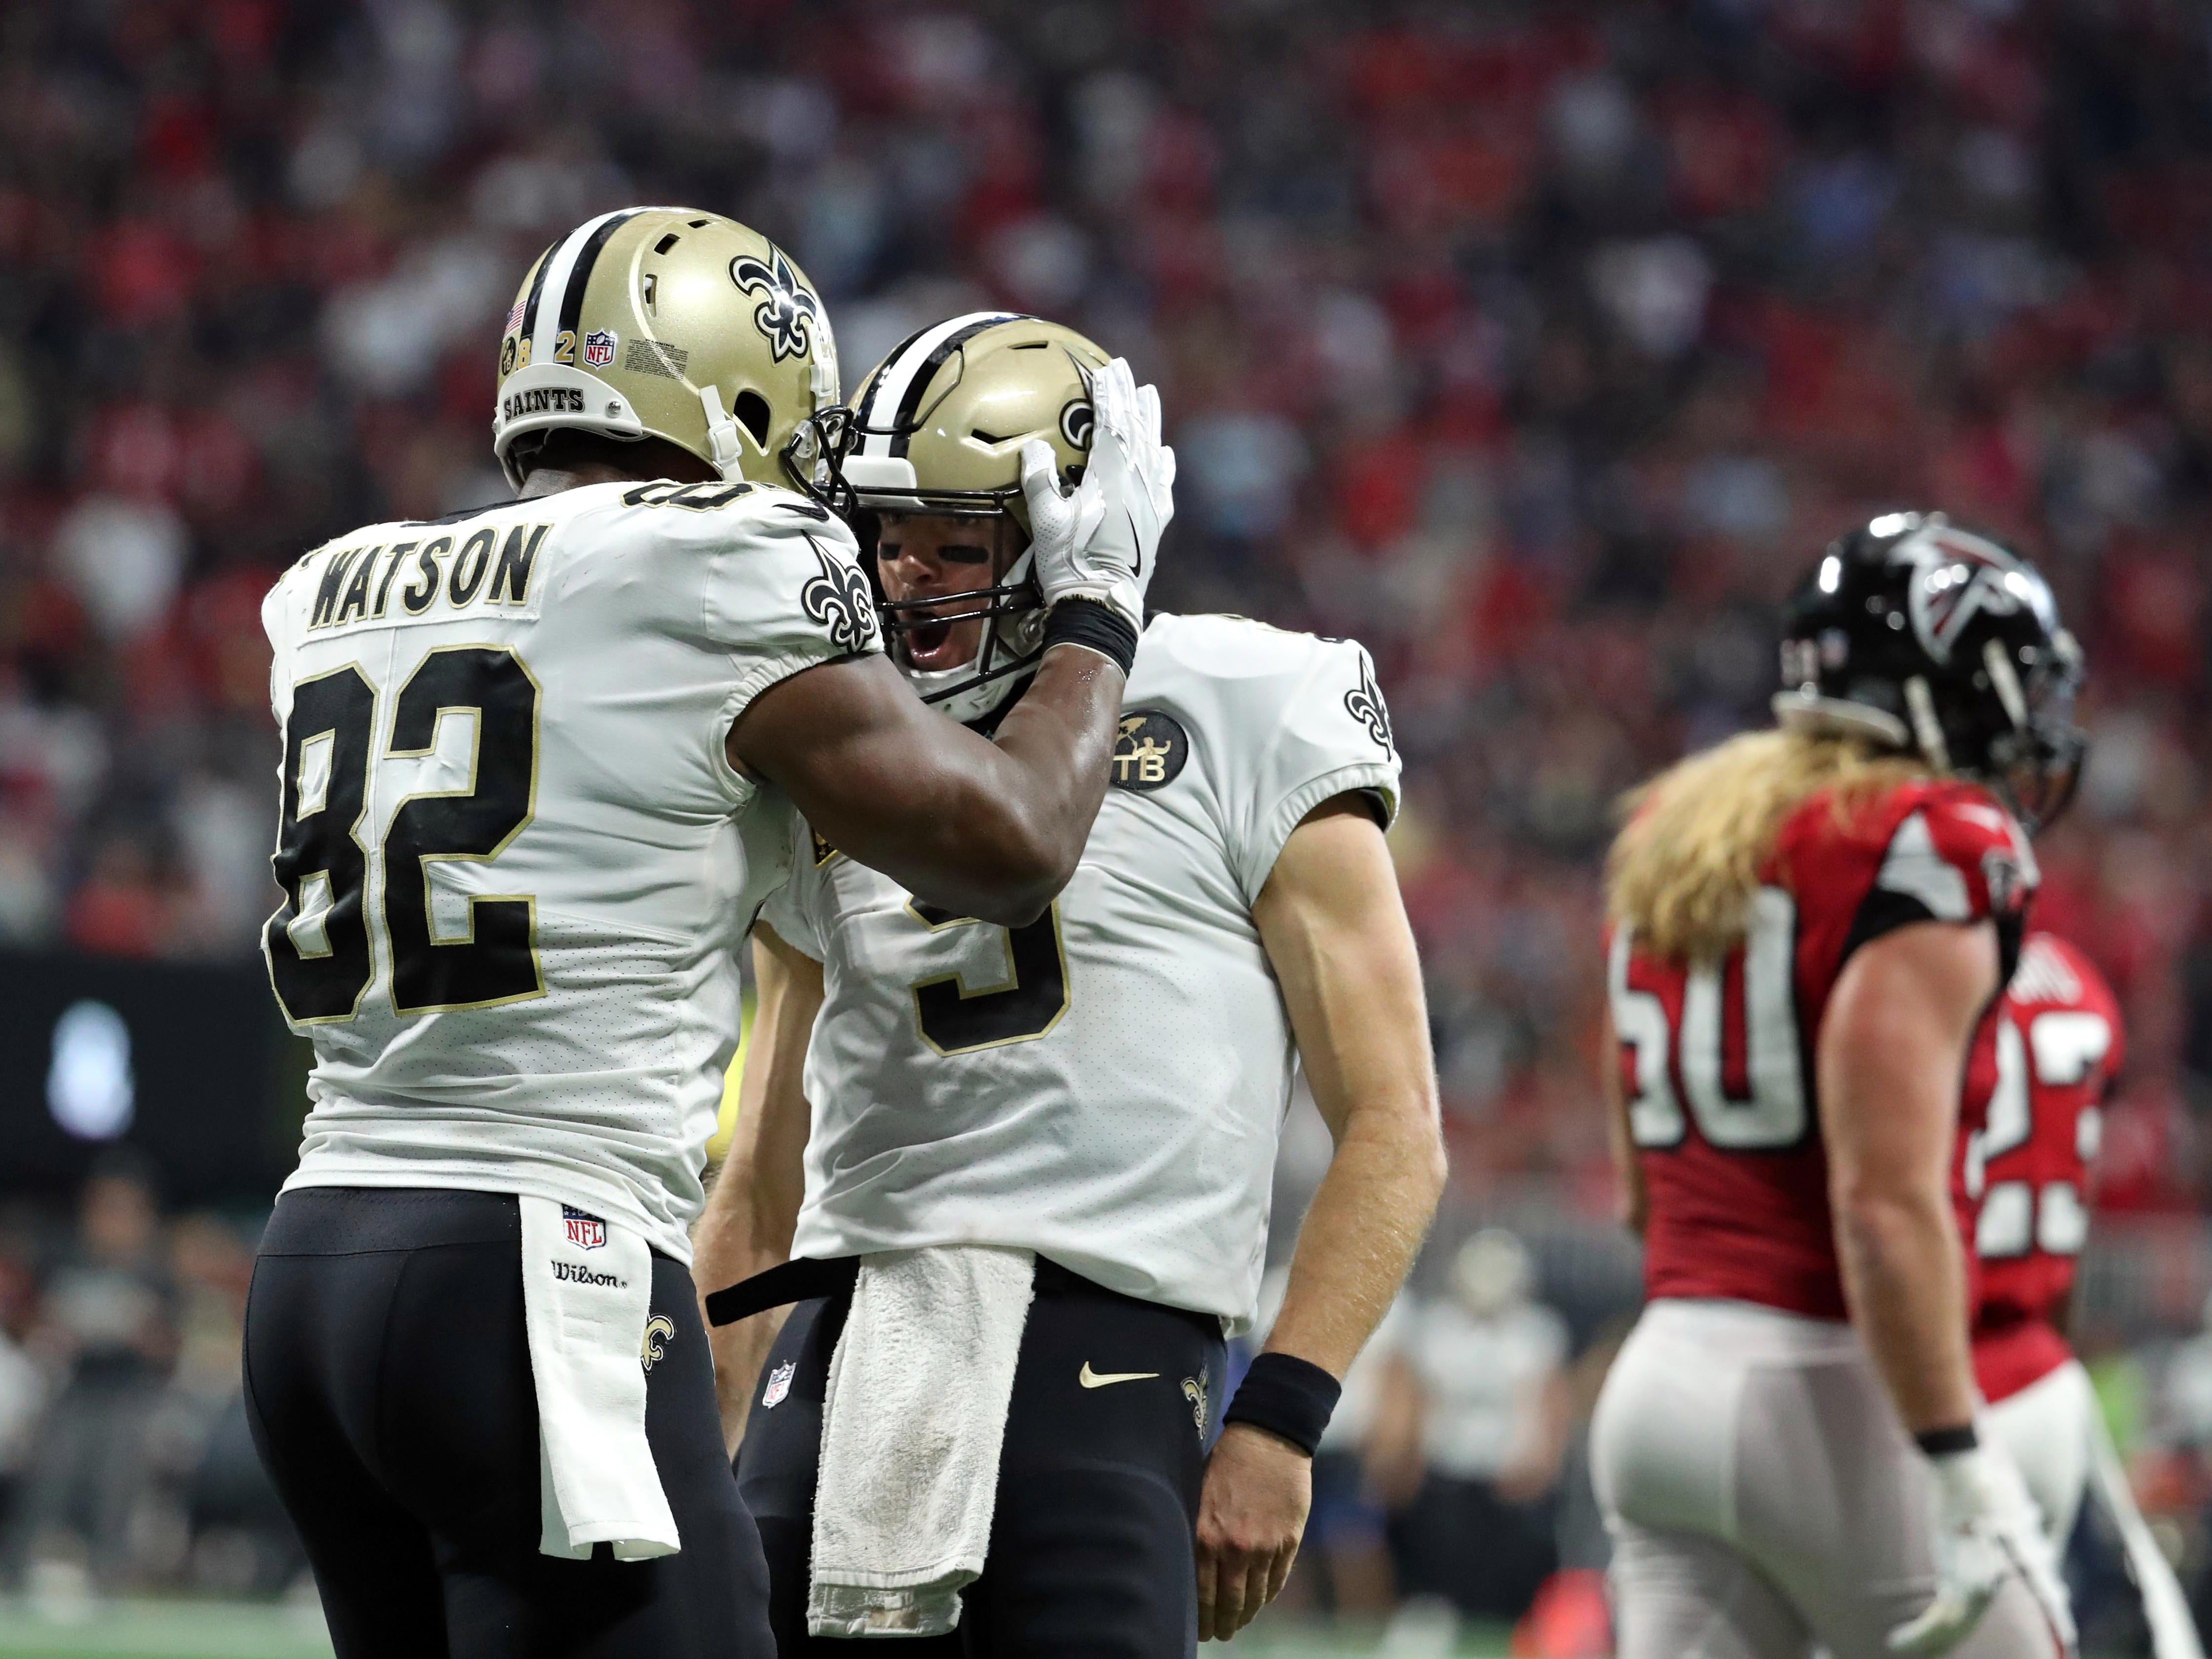 4. Saints (12): Drew Brees on pace for 5,749 pass yards, 80.6% completion rate. Michael Thomas on pace for 203 catches. Sick numbers even by N.O. standards.